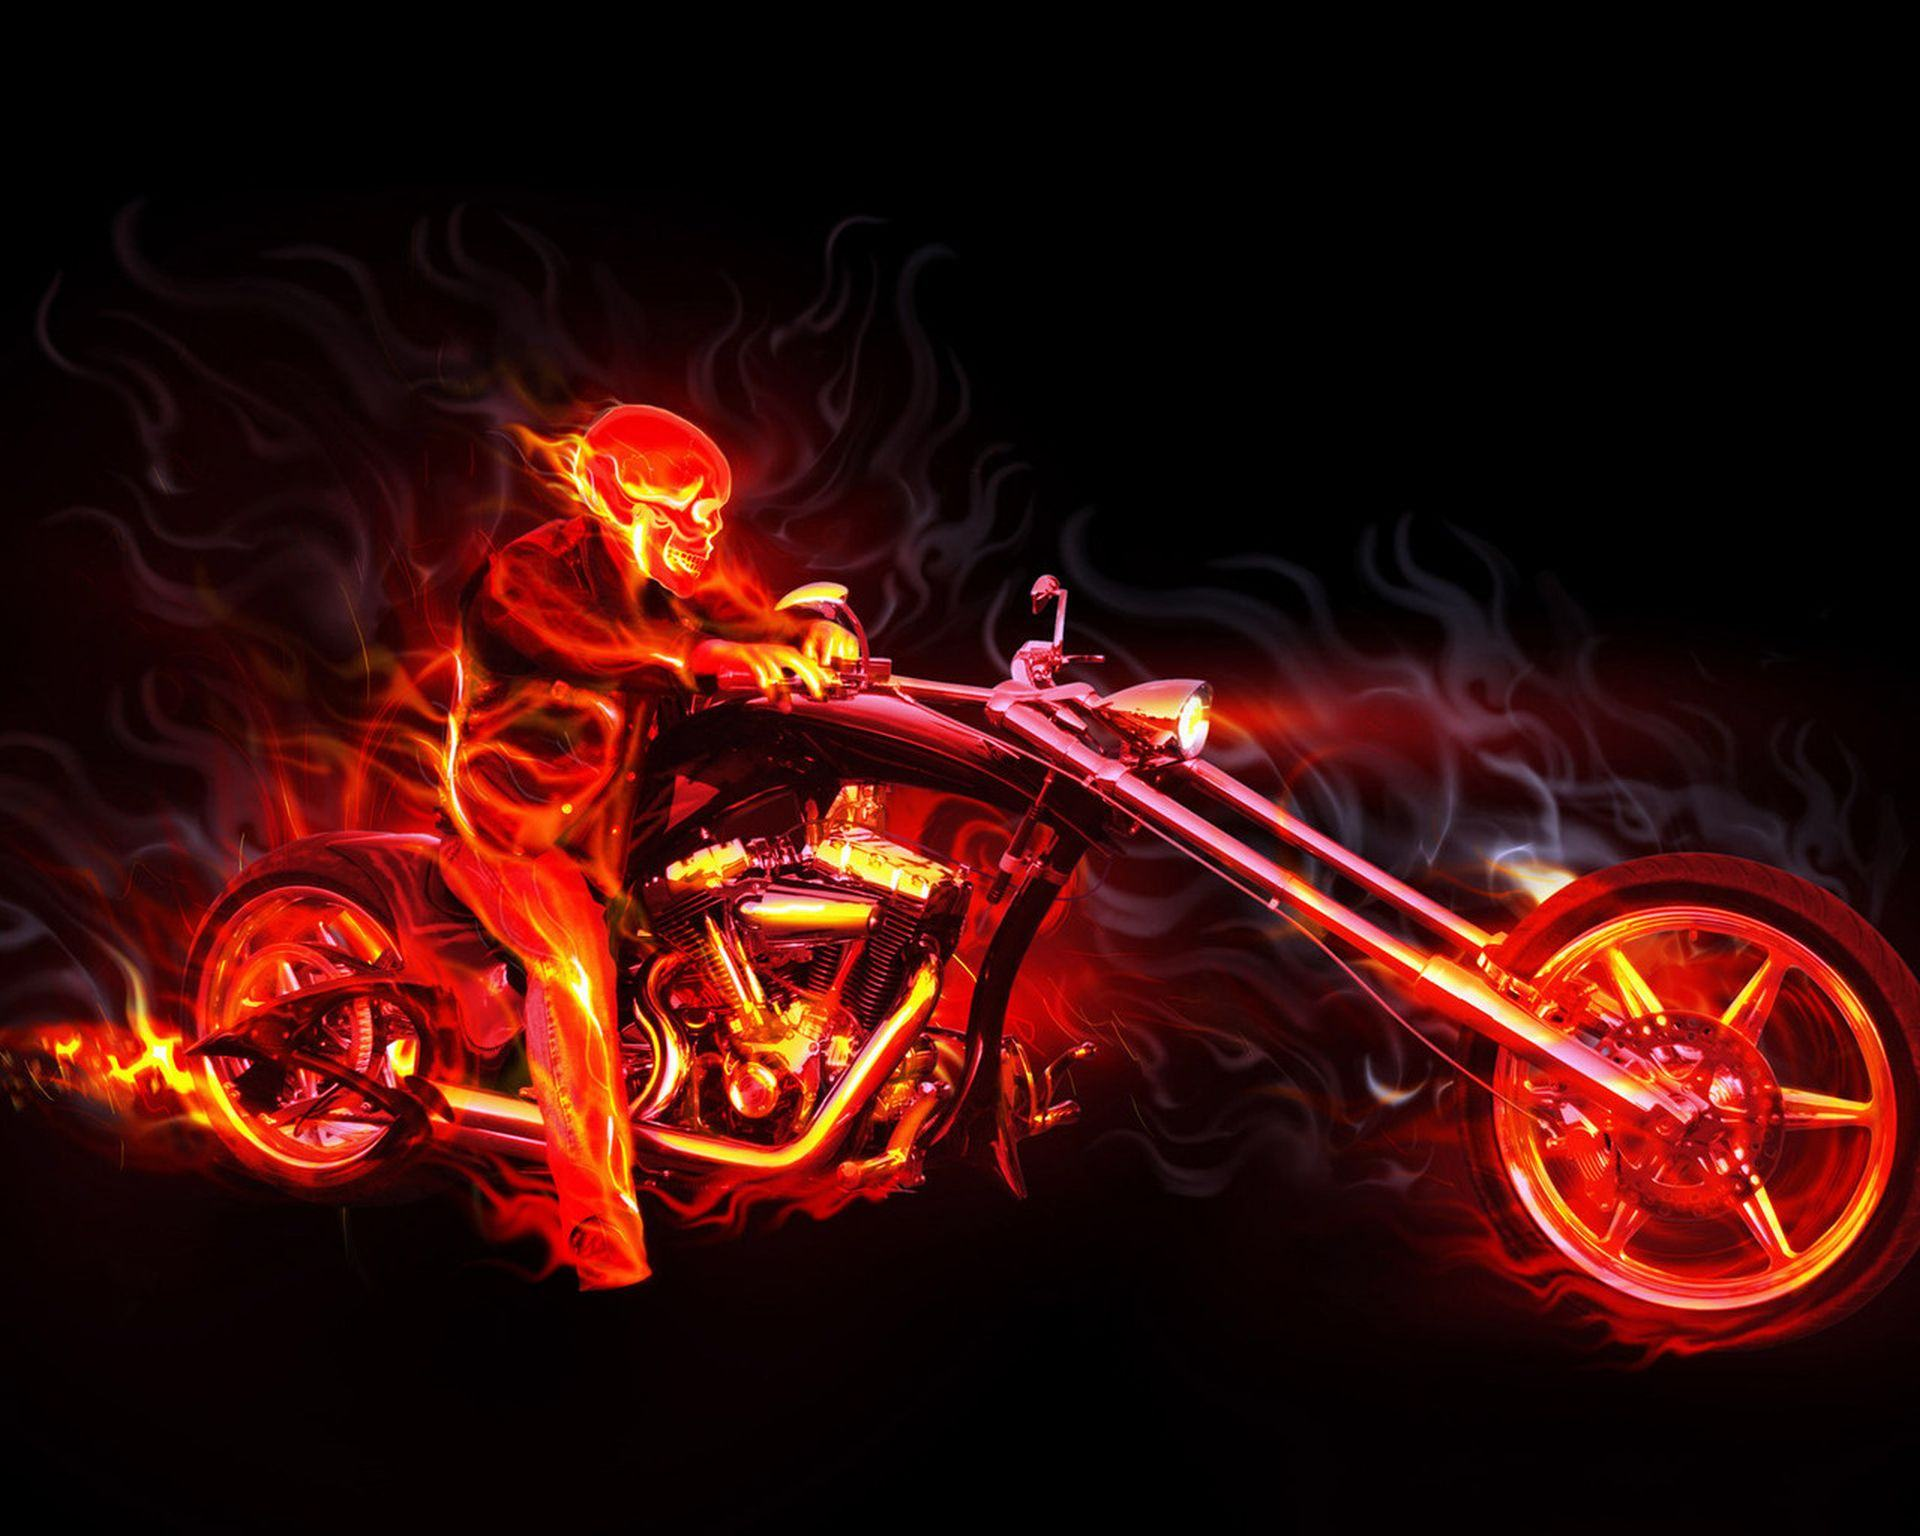 Ghost Rider viewing Movies Wallpaper HD Wallpapers Backgrounds 1920x1536